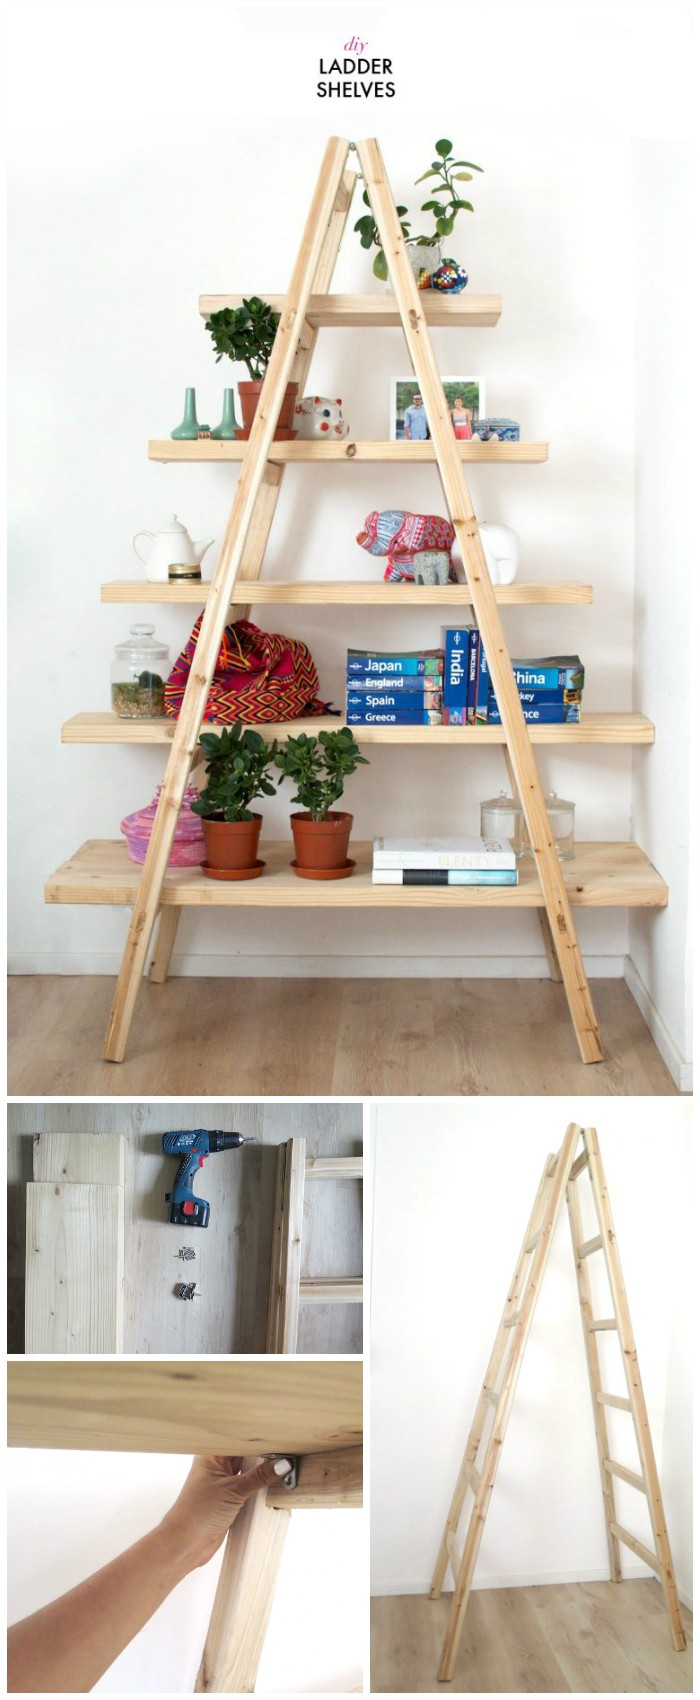 DIY Ladder Shelves DIY Home Decor Projects To Make Your Home Precious